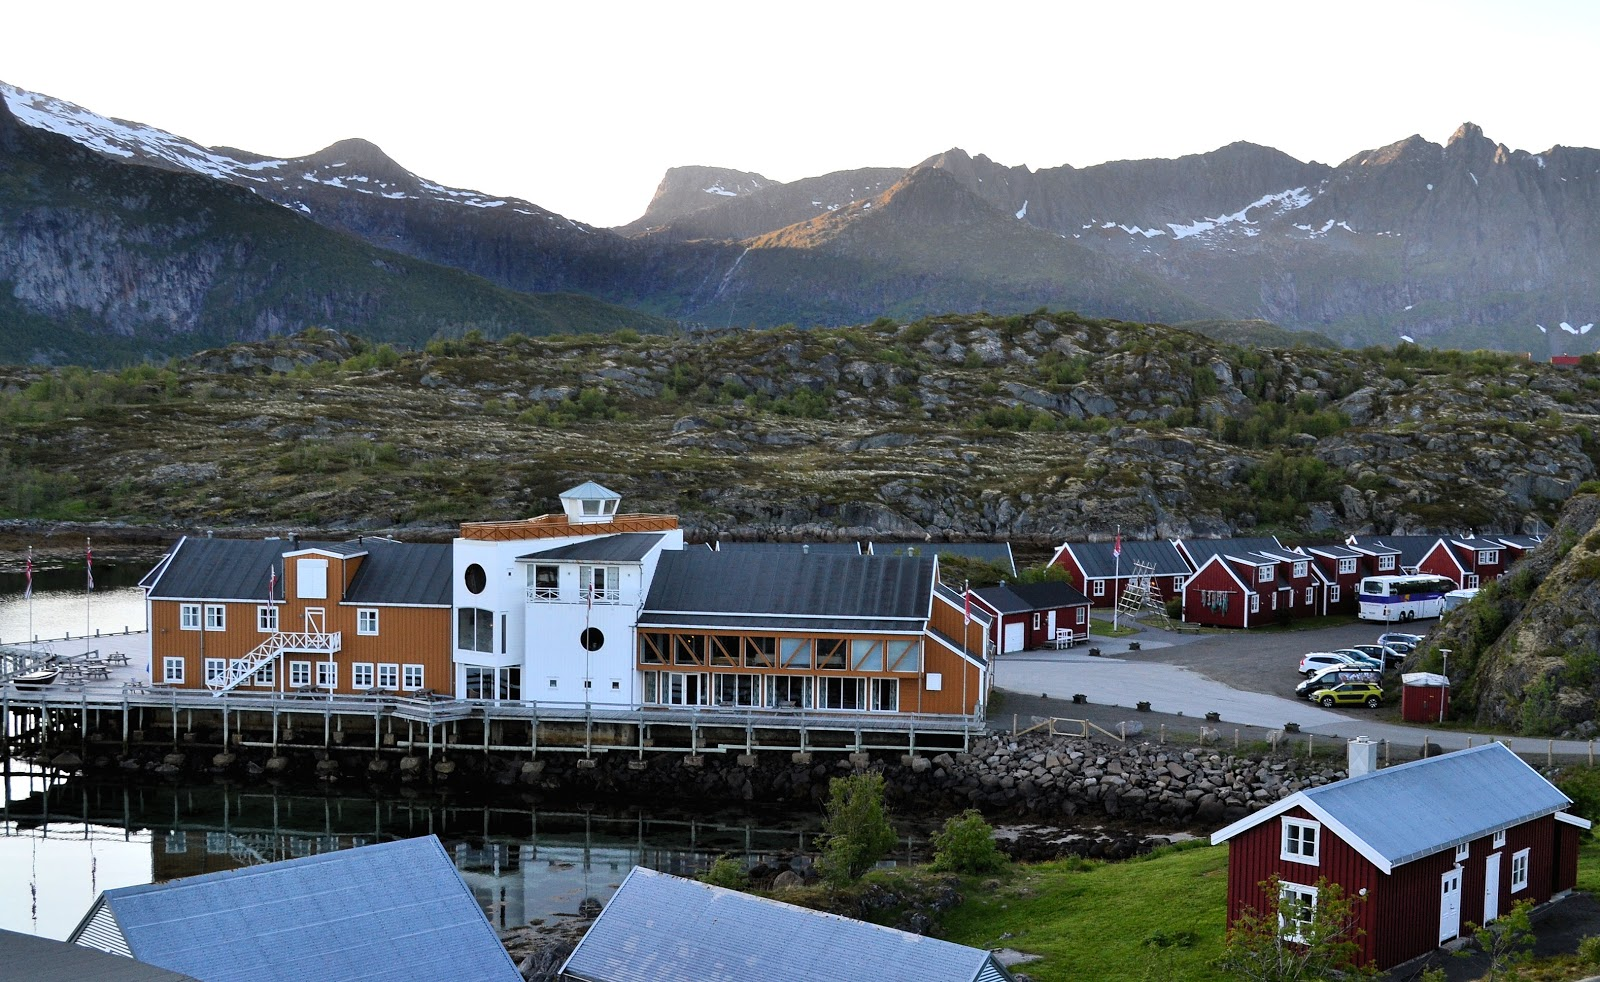 Overlooking Nyvågar Rorbuhotell, main building in the foreground.